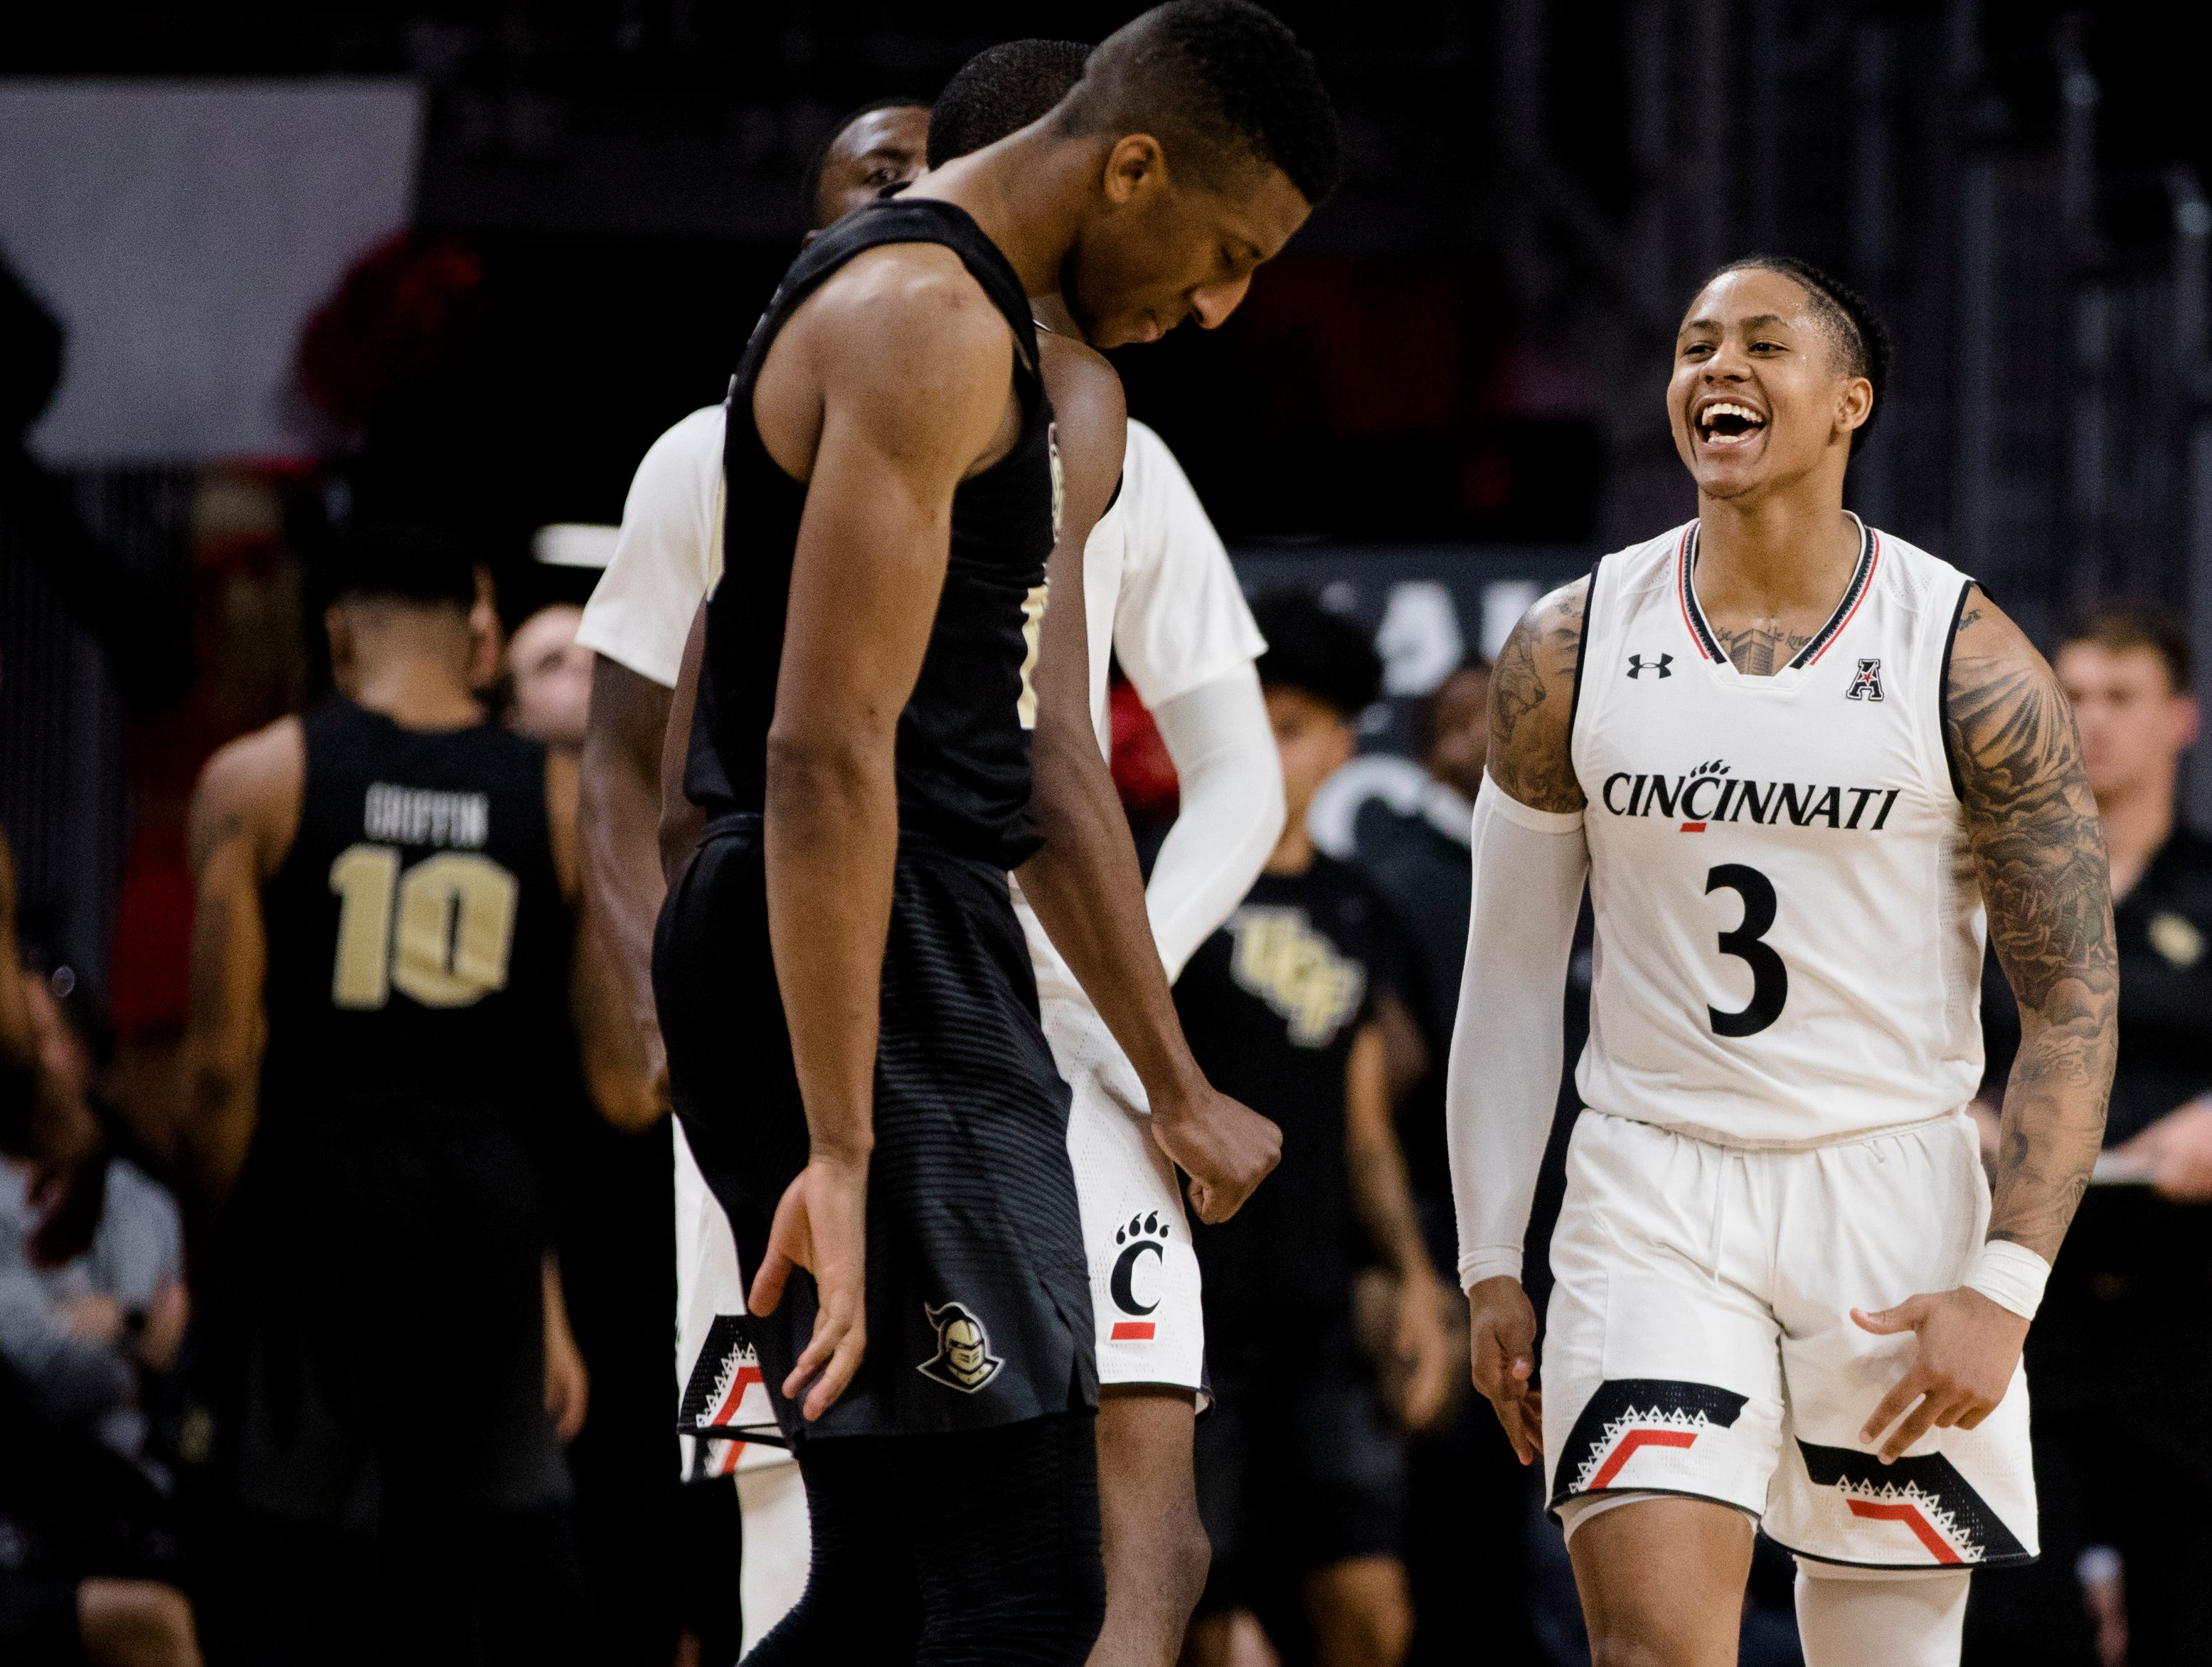 Cincinnati Bearcats guard Justin Jenifer (3) celebrates after hitting a 3-pointer in the second half of the NCAA men's basketball game between Cincinnati Bearcats and UCF Knights on Thursday, Feb. 21, 2019, at Fifth Third Arena in Cincinnati.